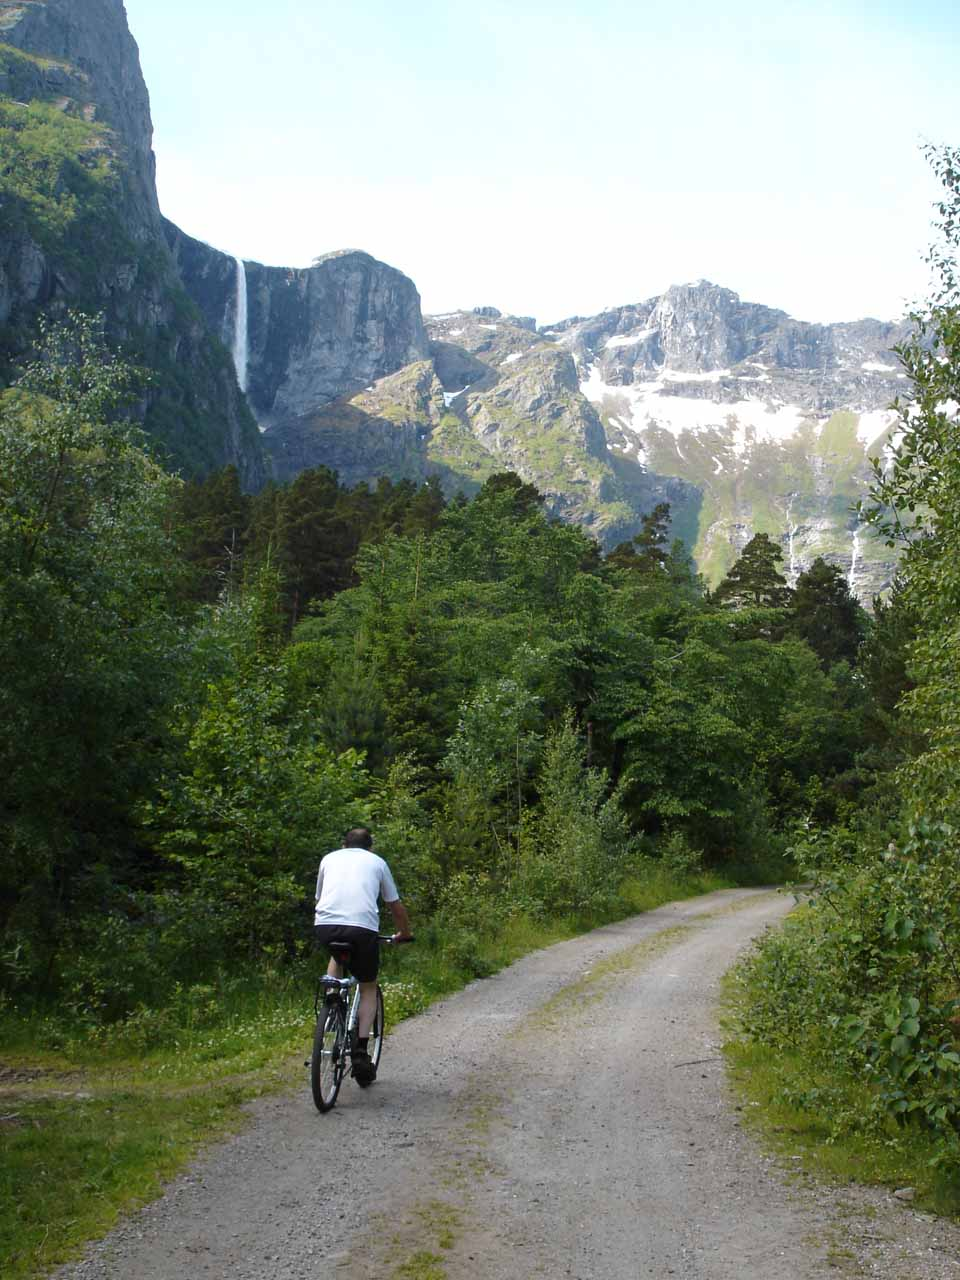 Being passed by a mountain biker as we hiked closer to Mardalsfossen